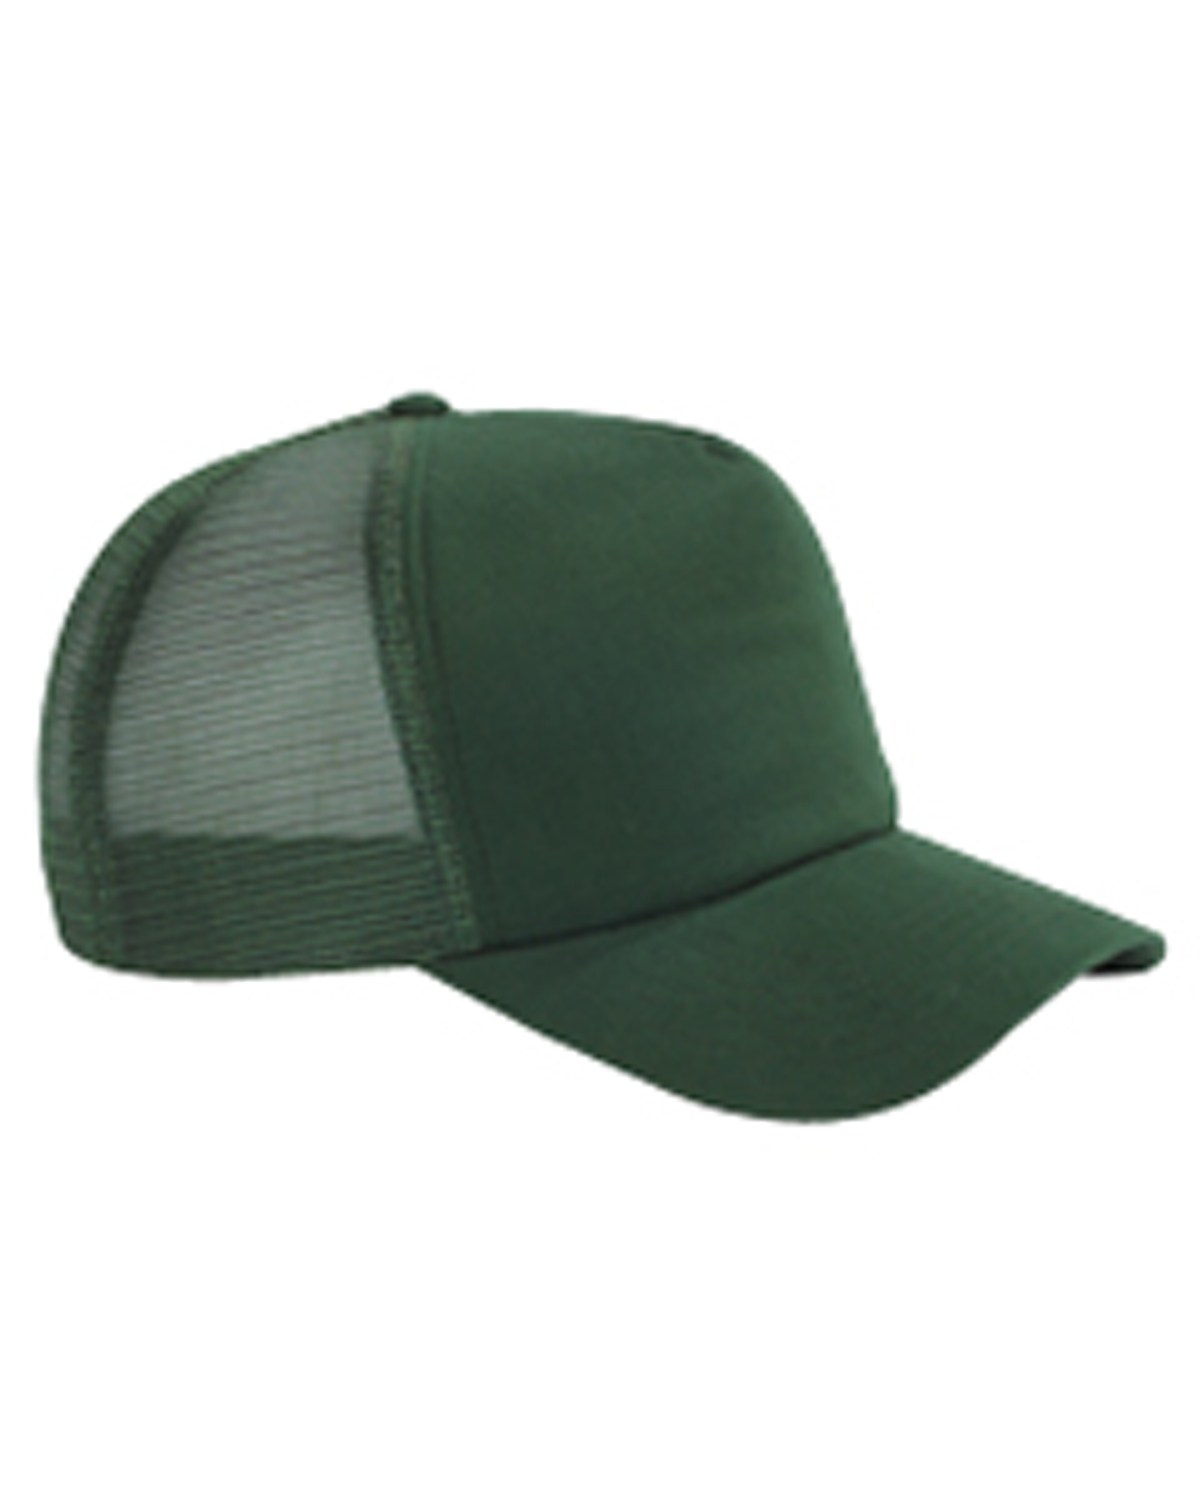 Big Accessories BX010  5-Panel Twill Trucker Cap